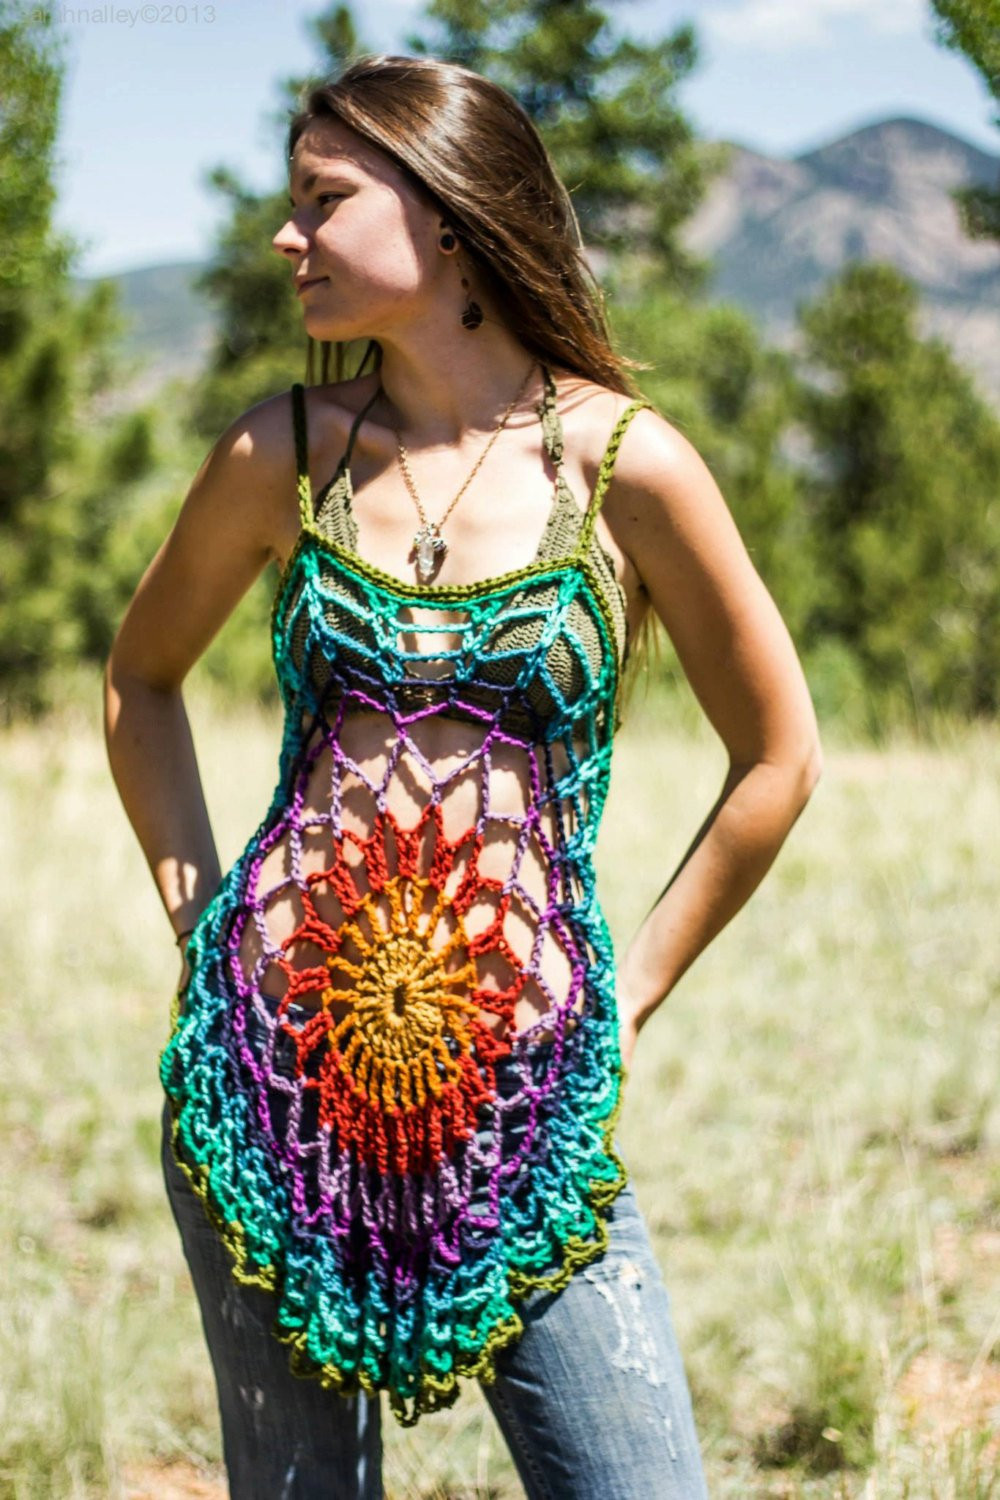 Crochet Swim Suit Elegant Crochet Mandala Tunic Dress Swimsuit Coverup Of Marvelous 44 Models Crochet Swim Suit